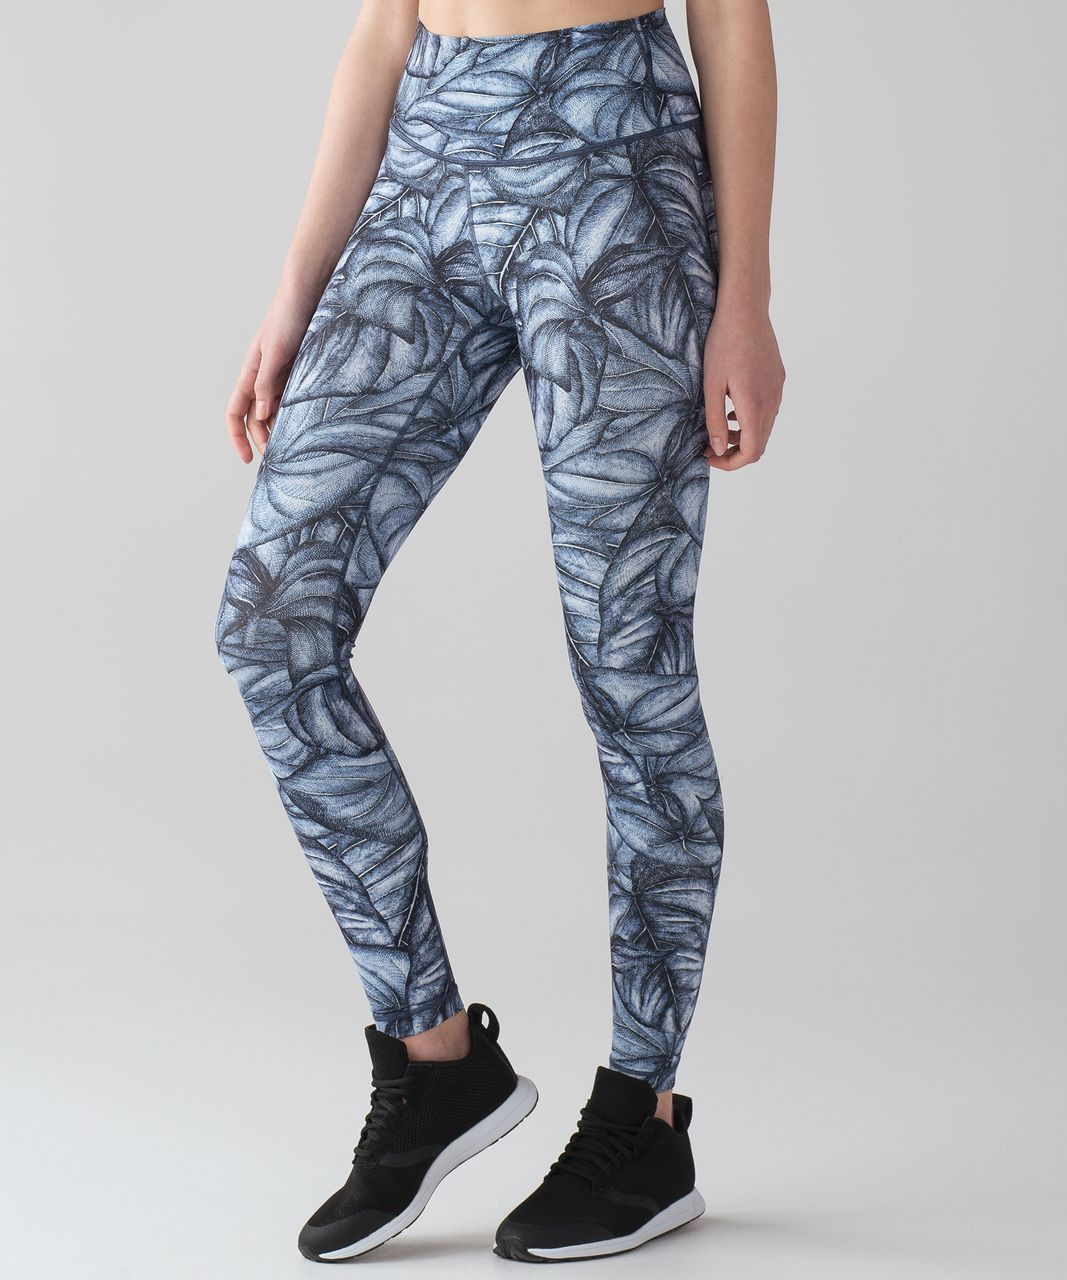 Lululemon Wunder Under Hi-Rise Tight (Nulux) - Concrete Jungle Alpine White Multi